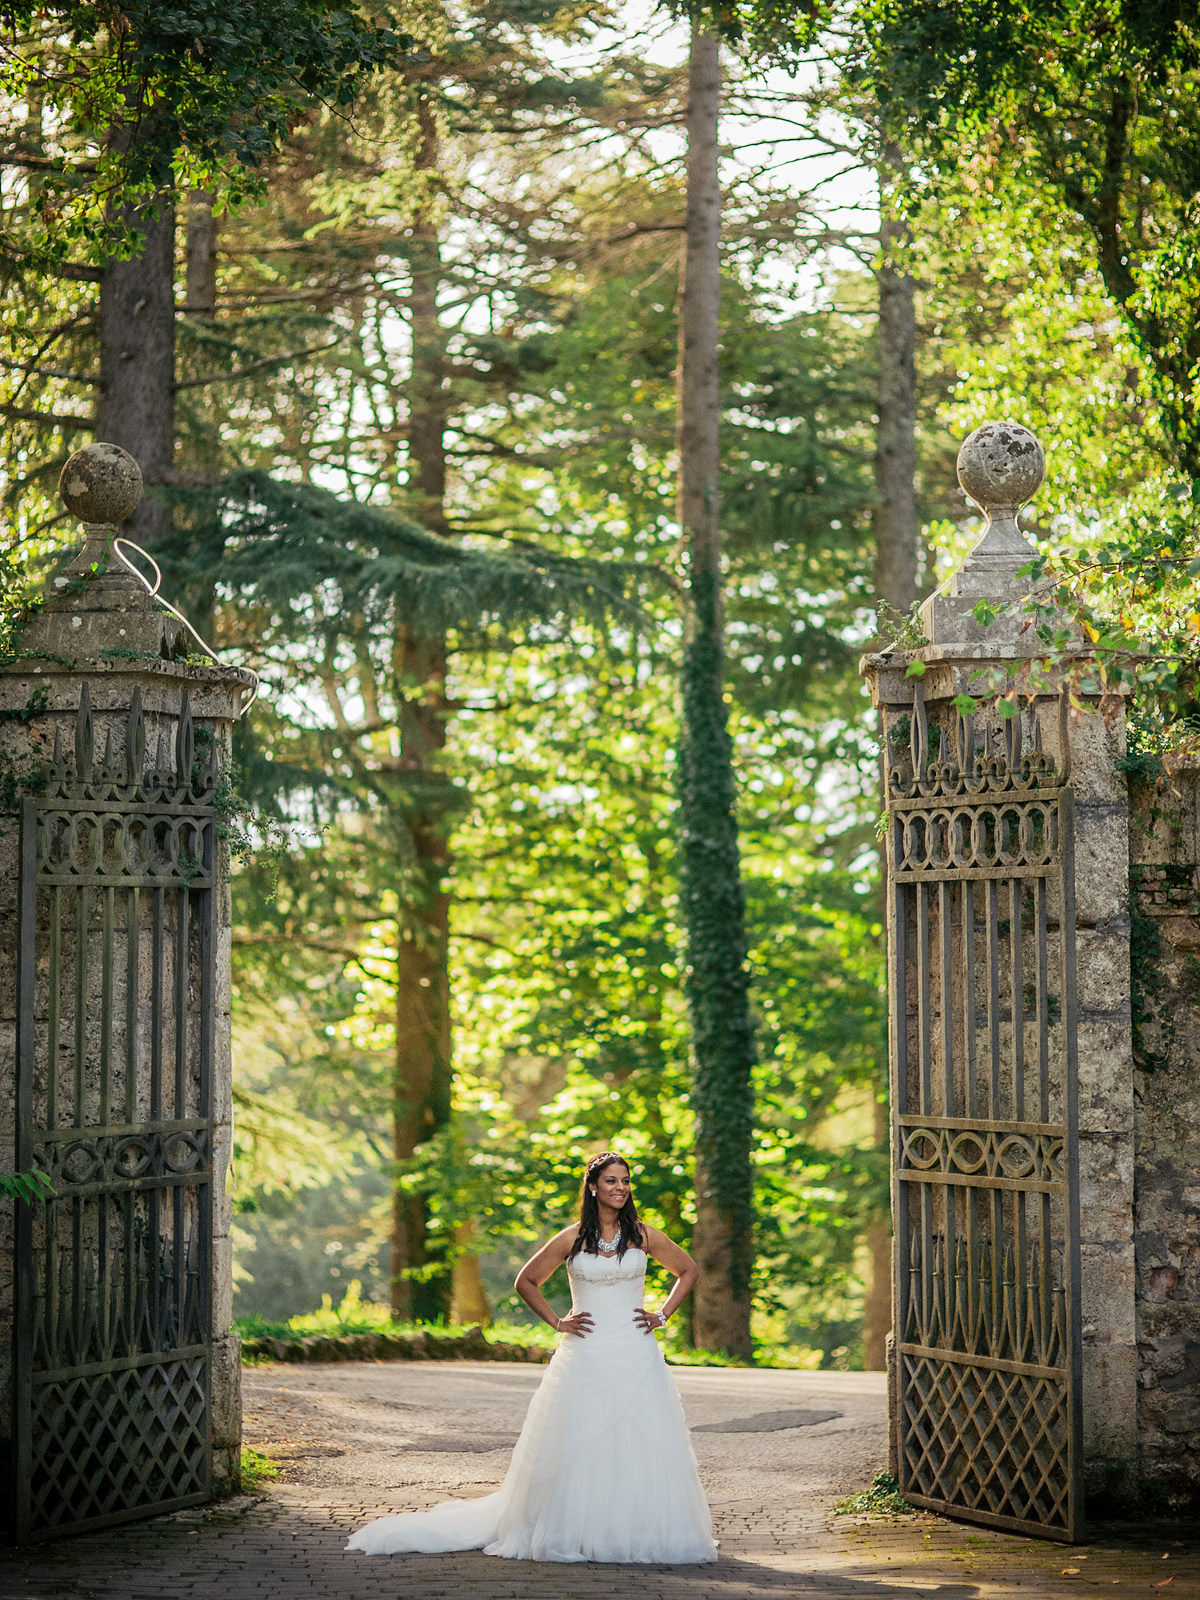 destination wedding photography rieti italy bridal portrait